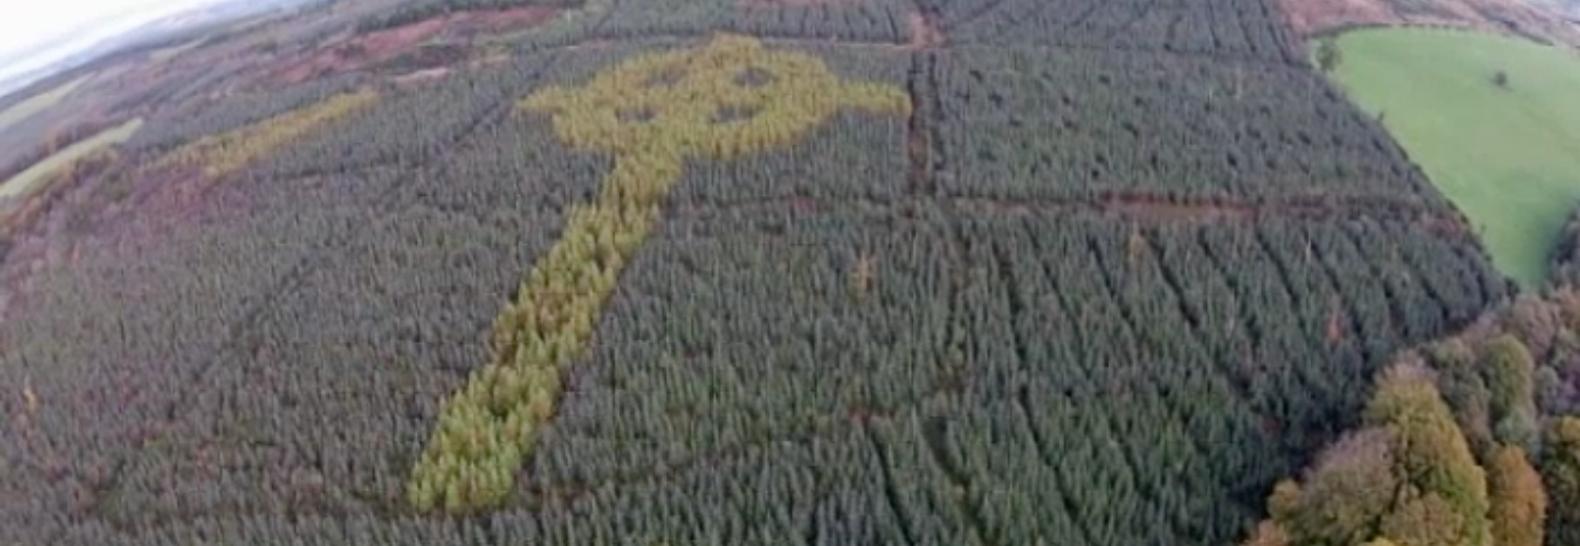 A massive Celtic cross made out of thousands of trees has secretly sprouted up in an Irish forest